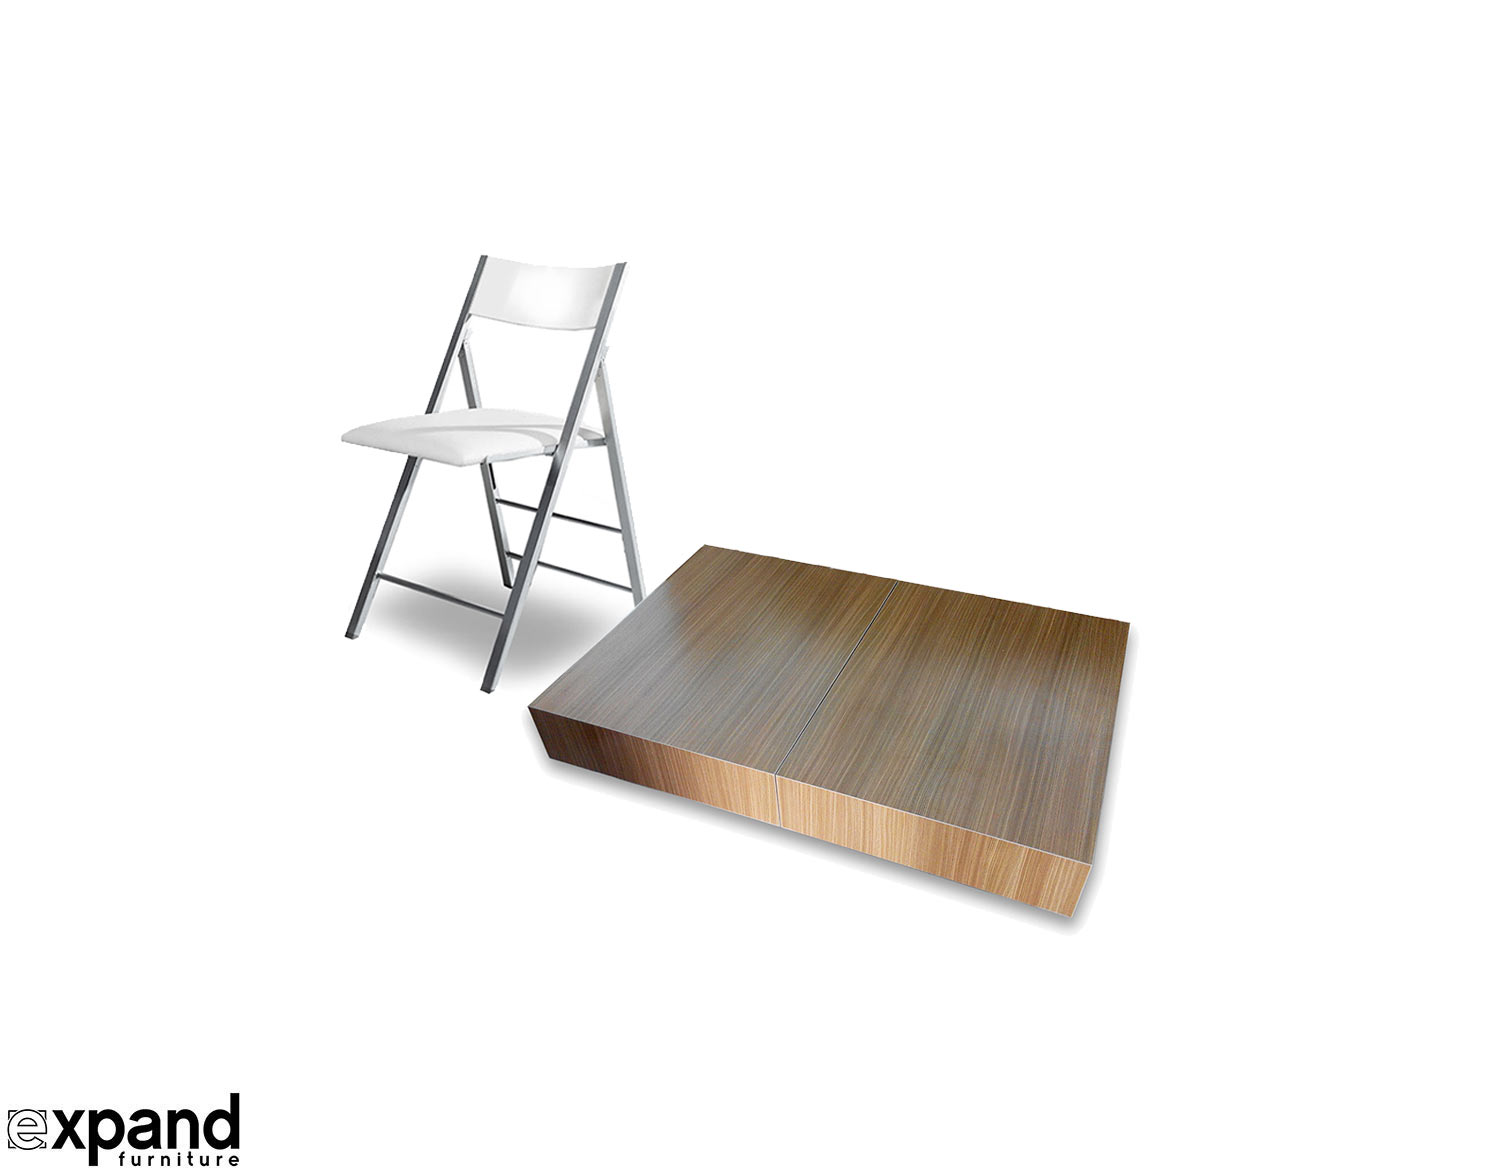 Swell Expandable Box Coffee To Table Dining Set Andrewgaddart Wooden Chair Designs For Living Room Andrewgaddartcom